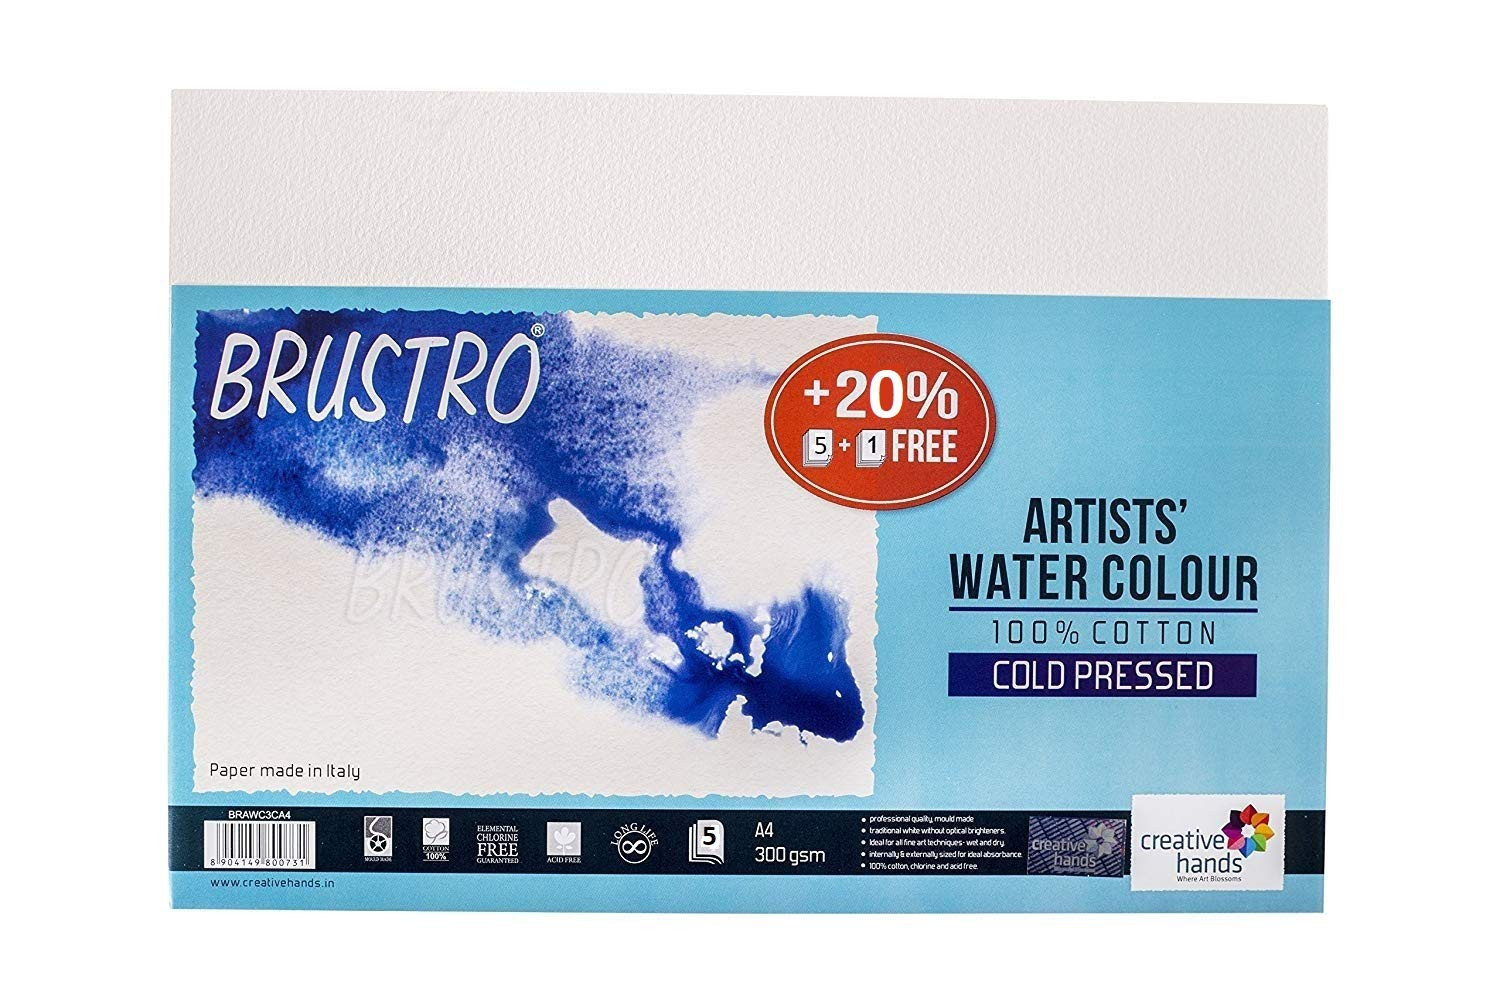 Brustro Artists Watercolour Paper, 100% Cotton, Cold Pressed, A4 Size, 300 GSM (Pack of 4 + 1 Free Sheet) product image